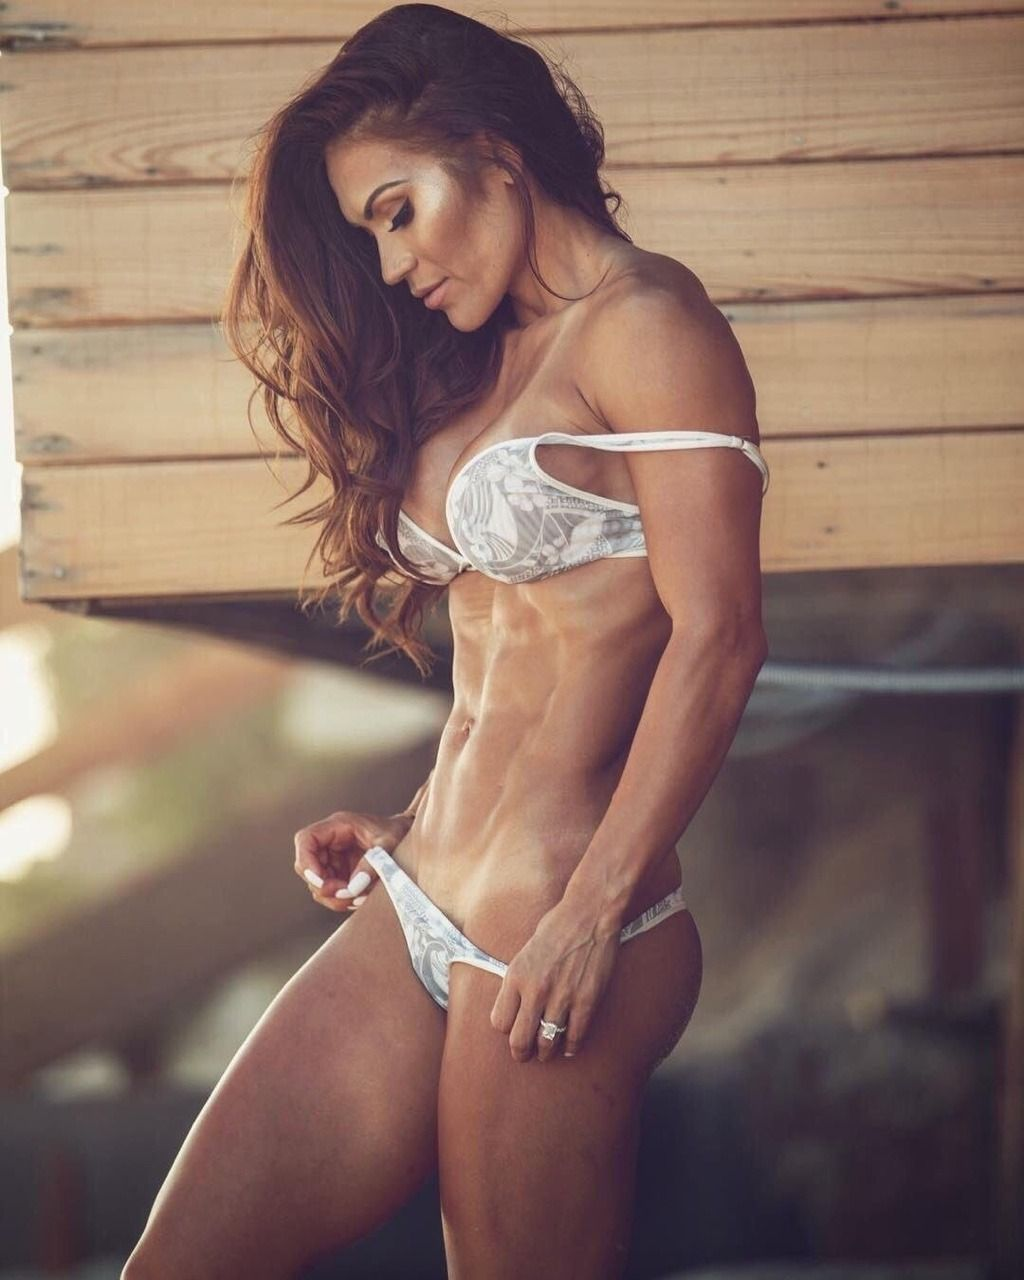 Only Ripped Girls  Great Abs  Ripped  Ripped Girls -6239